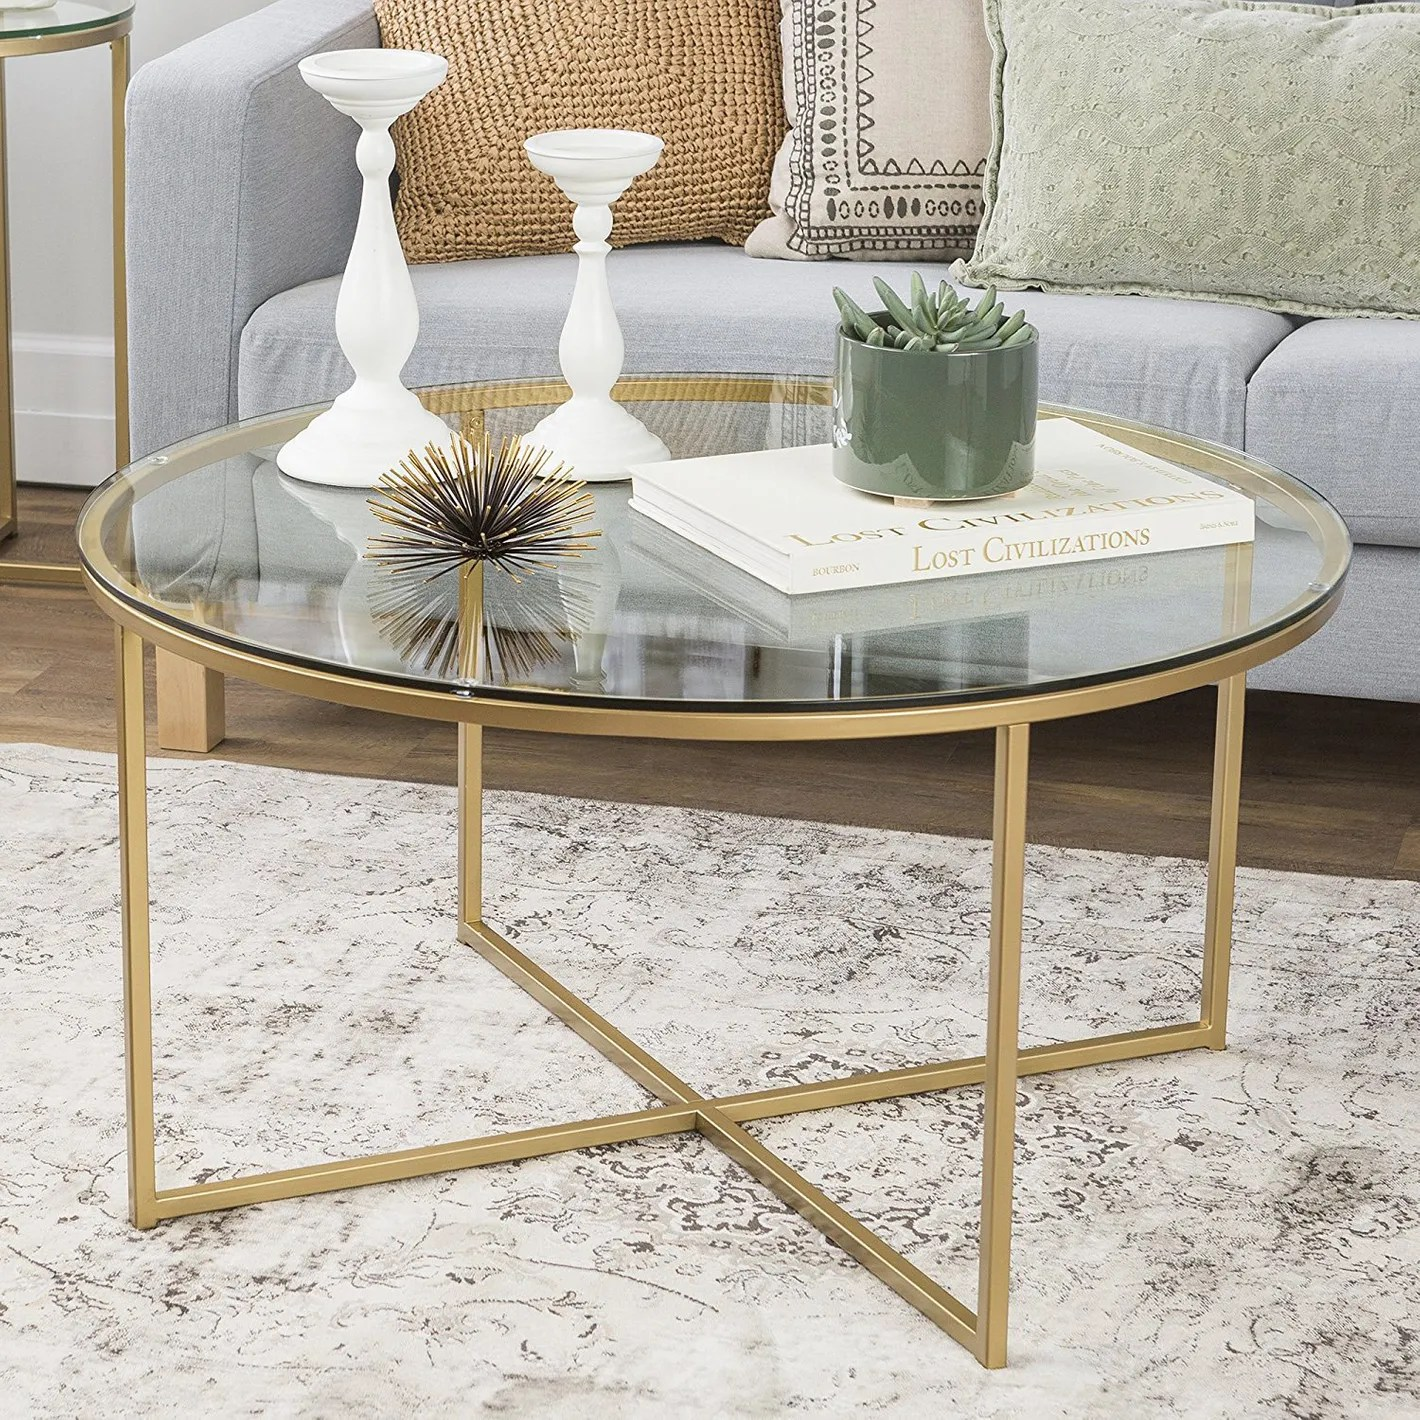 Couchtisch Little & Nice The Best Glass Coffee Tables Under 200